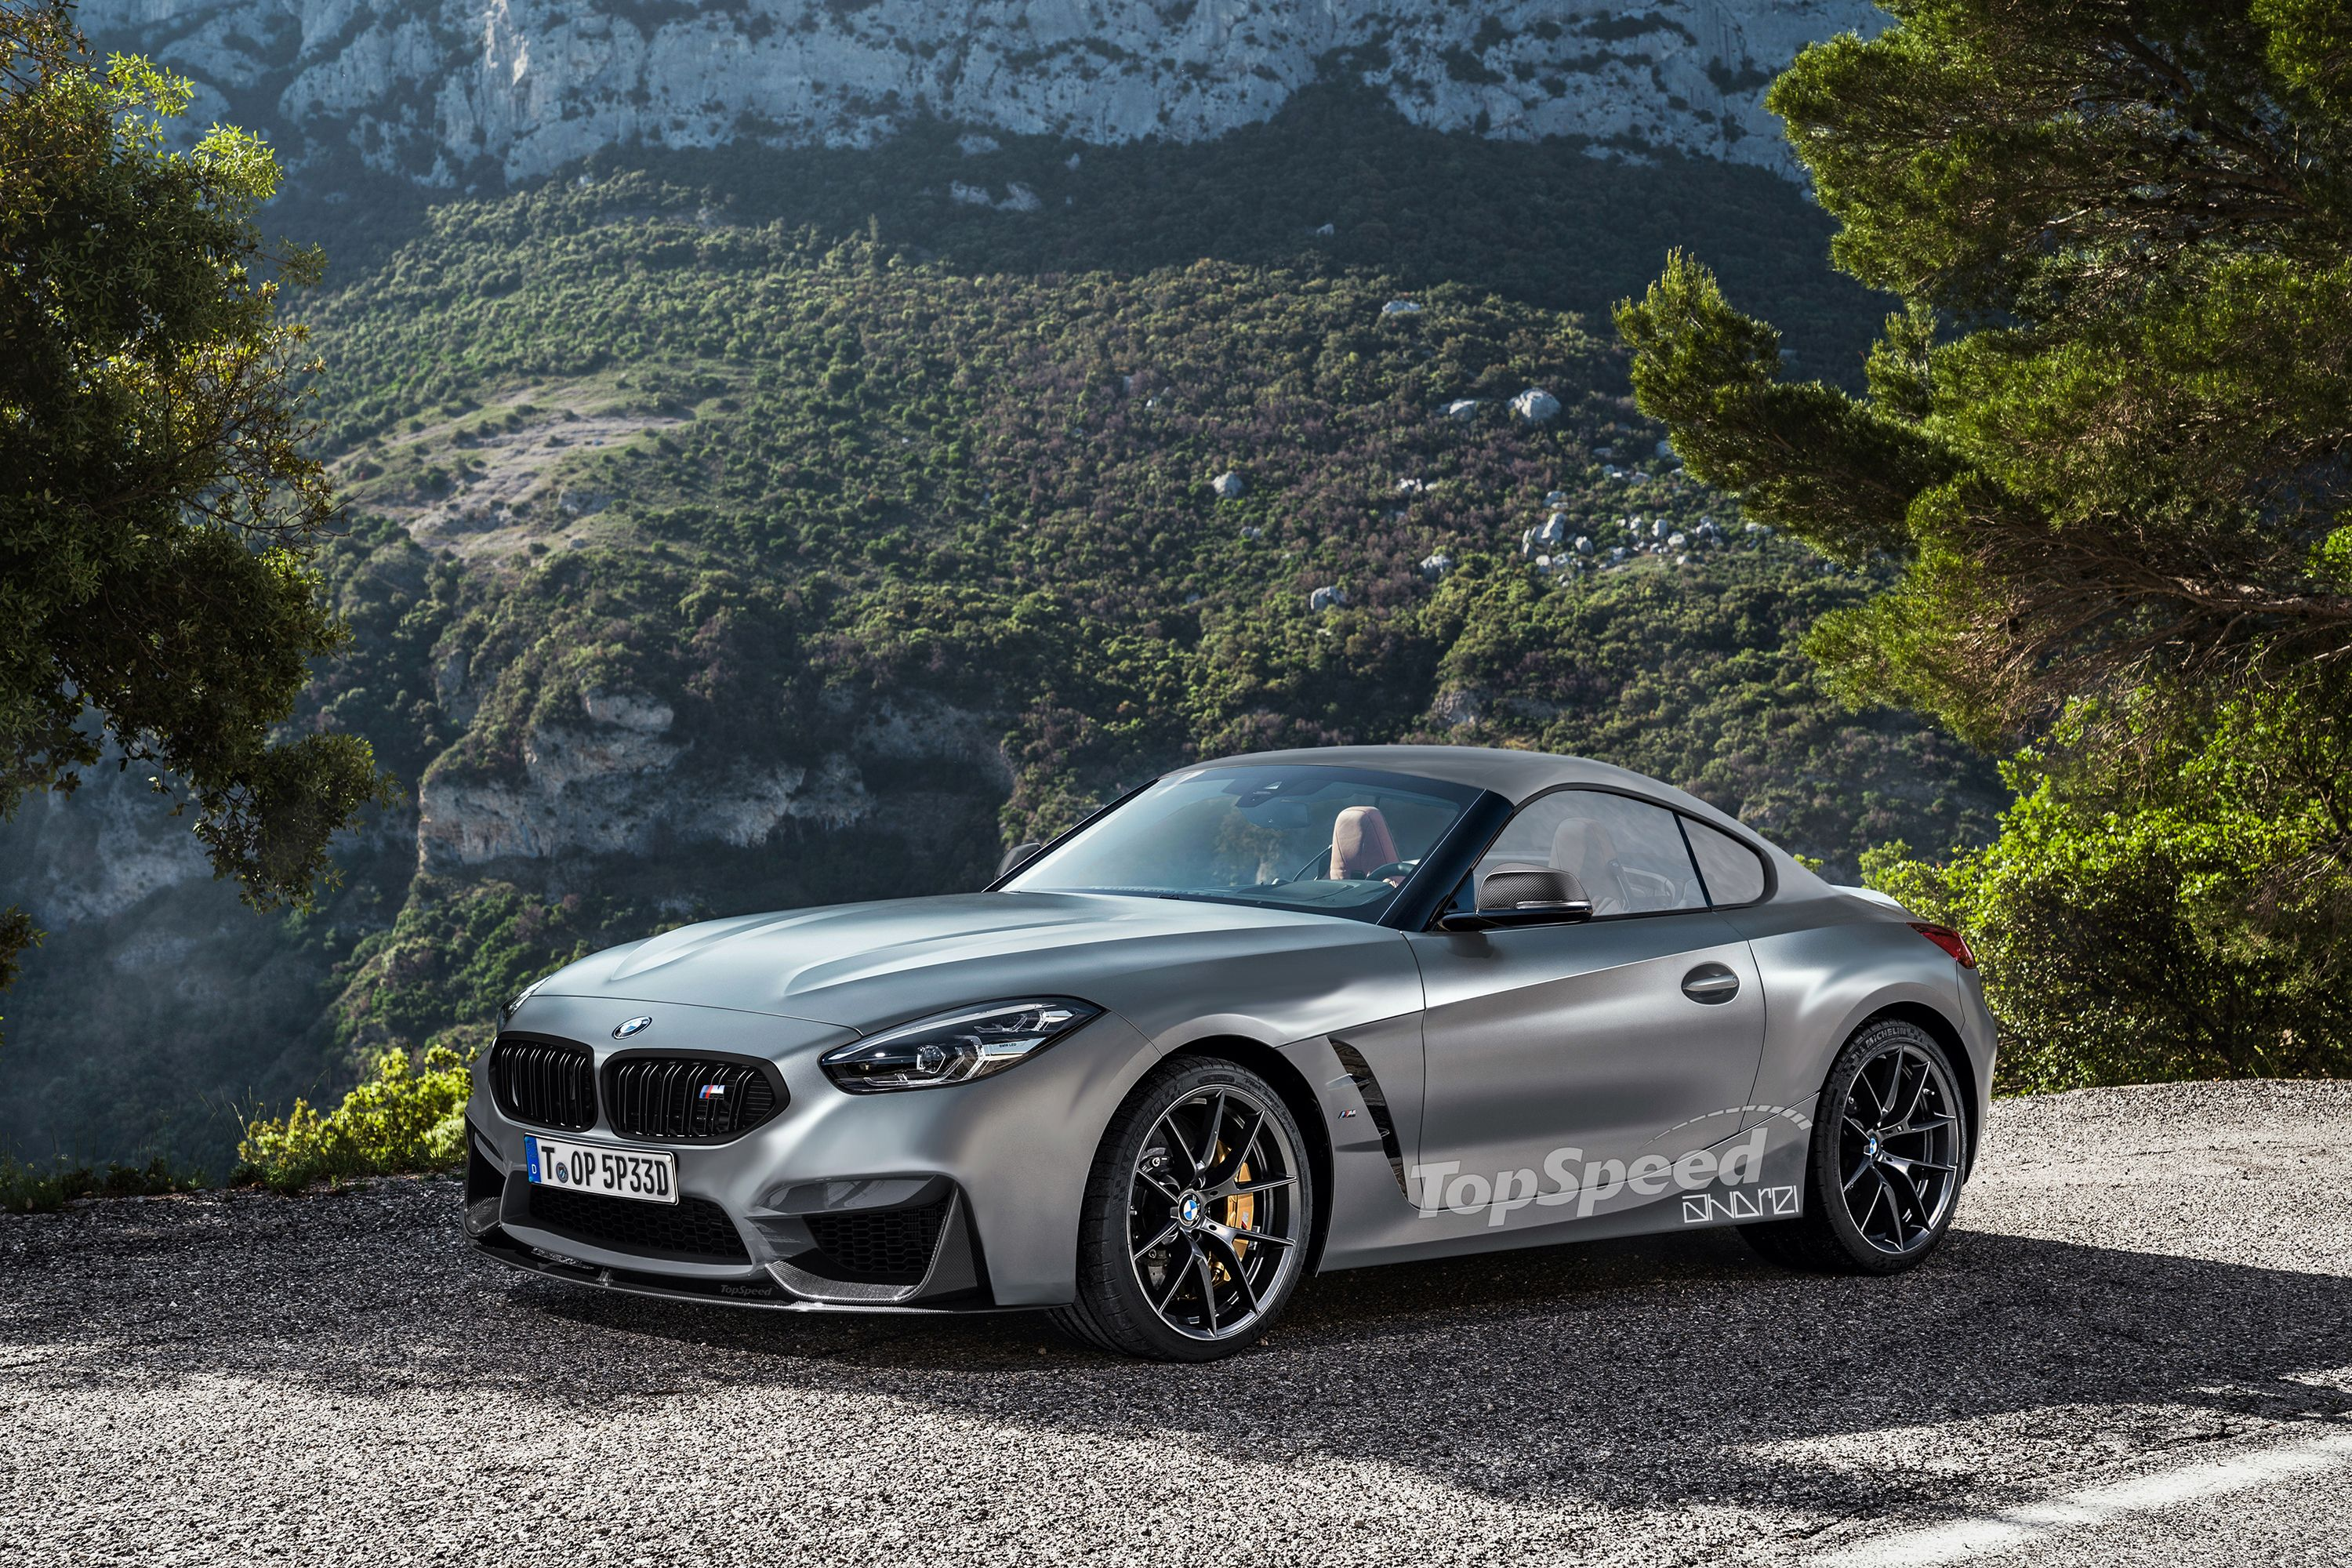 81 A 2020 BMW Z4 M Roadster Price and Review